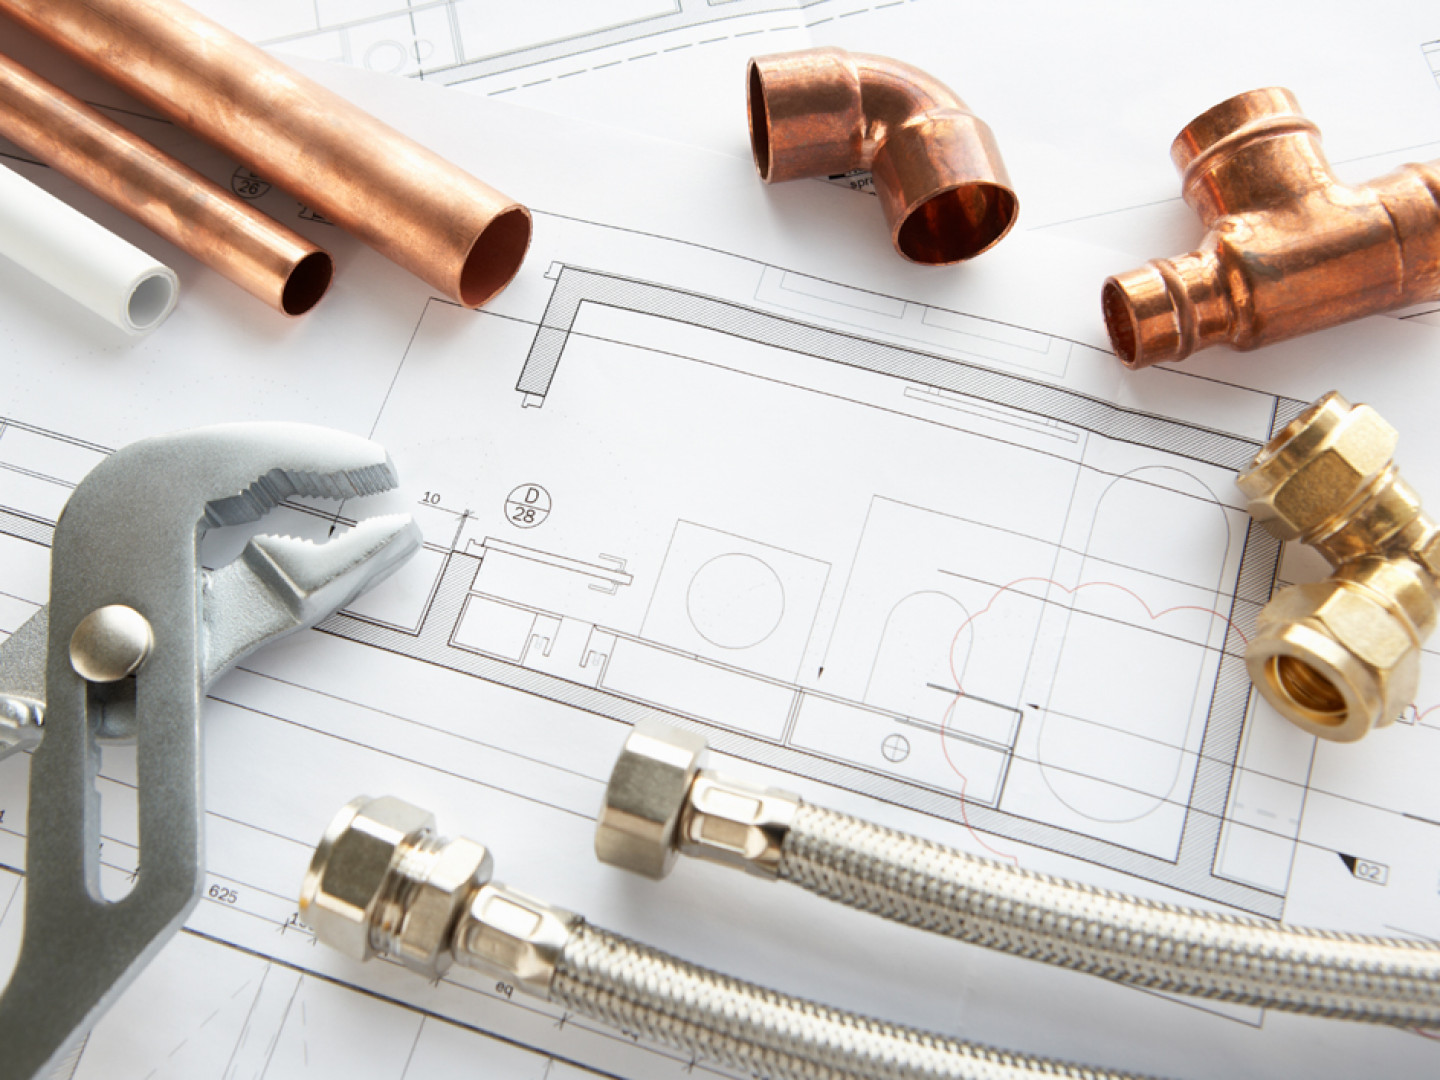 Speak with a plumbing contractor in Benton, AR